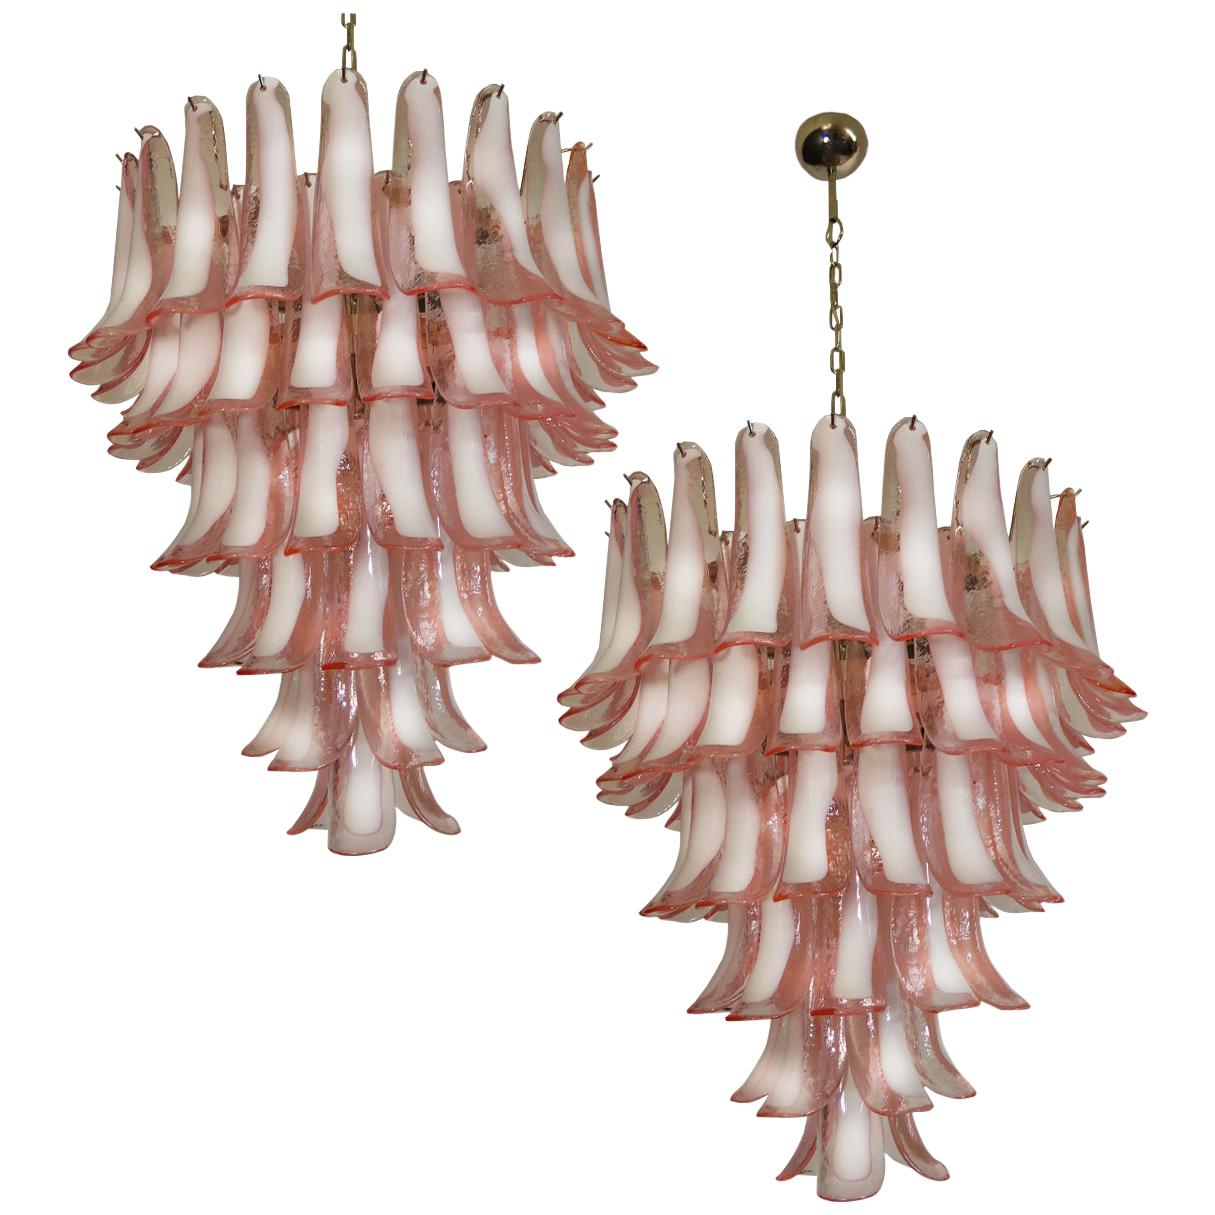 Pair of Italian Petal Chandeliers, Murano